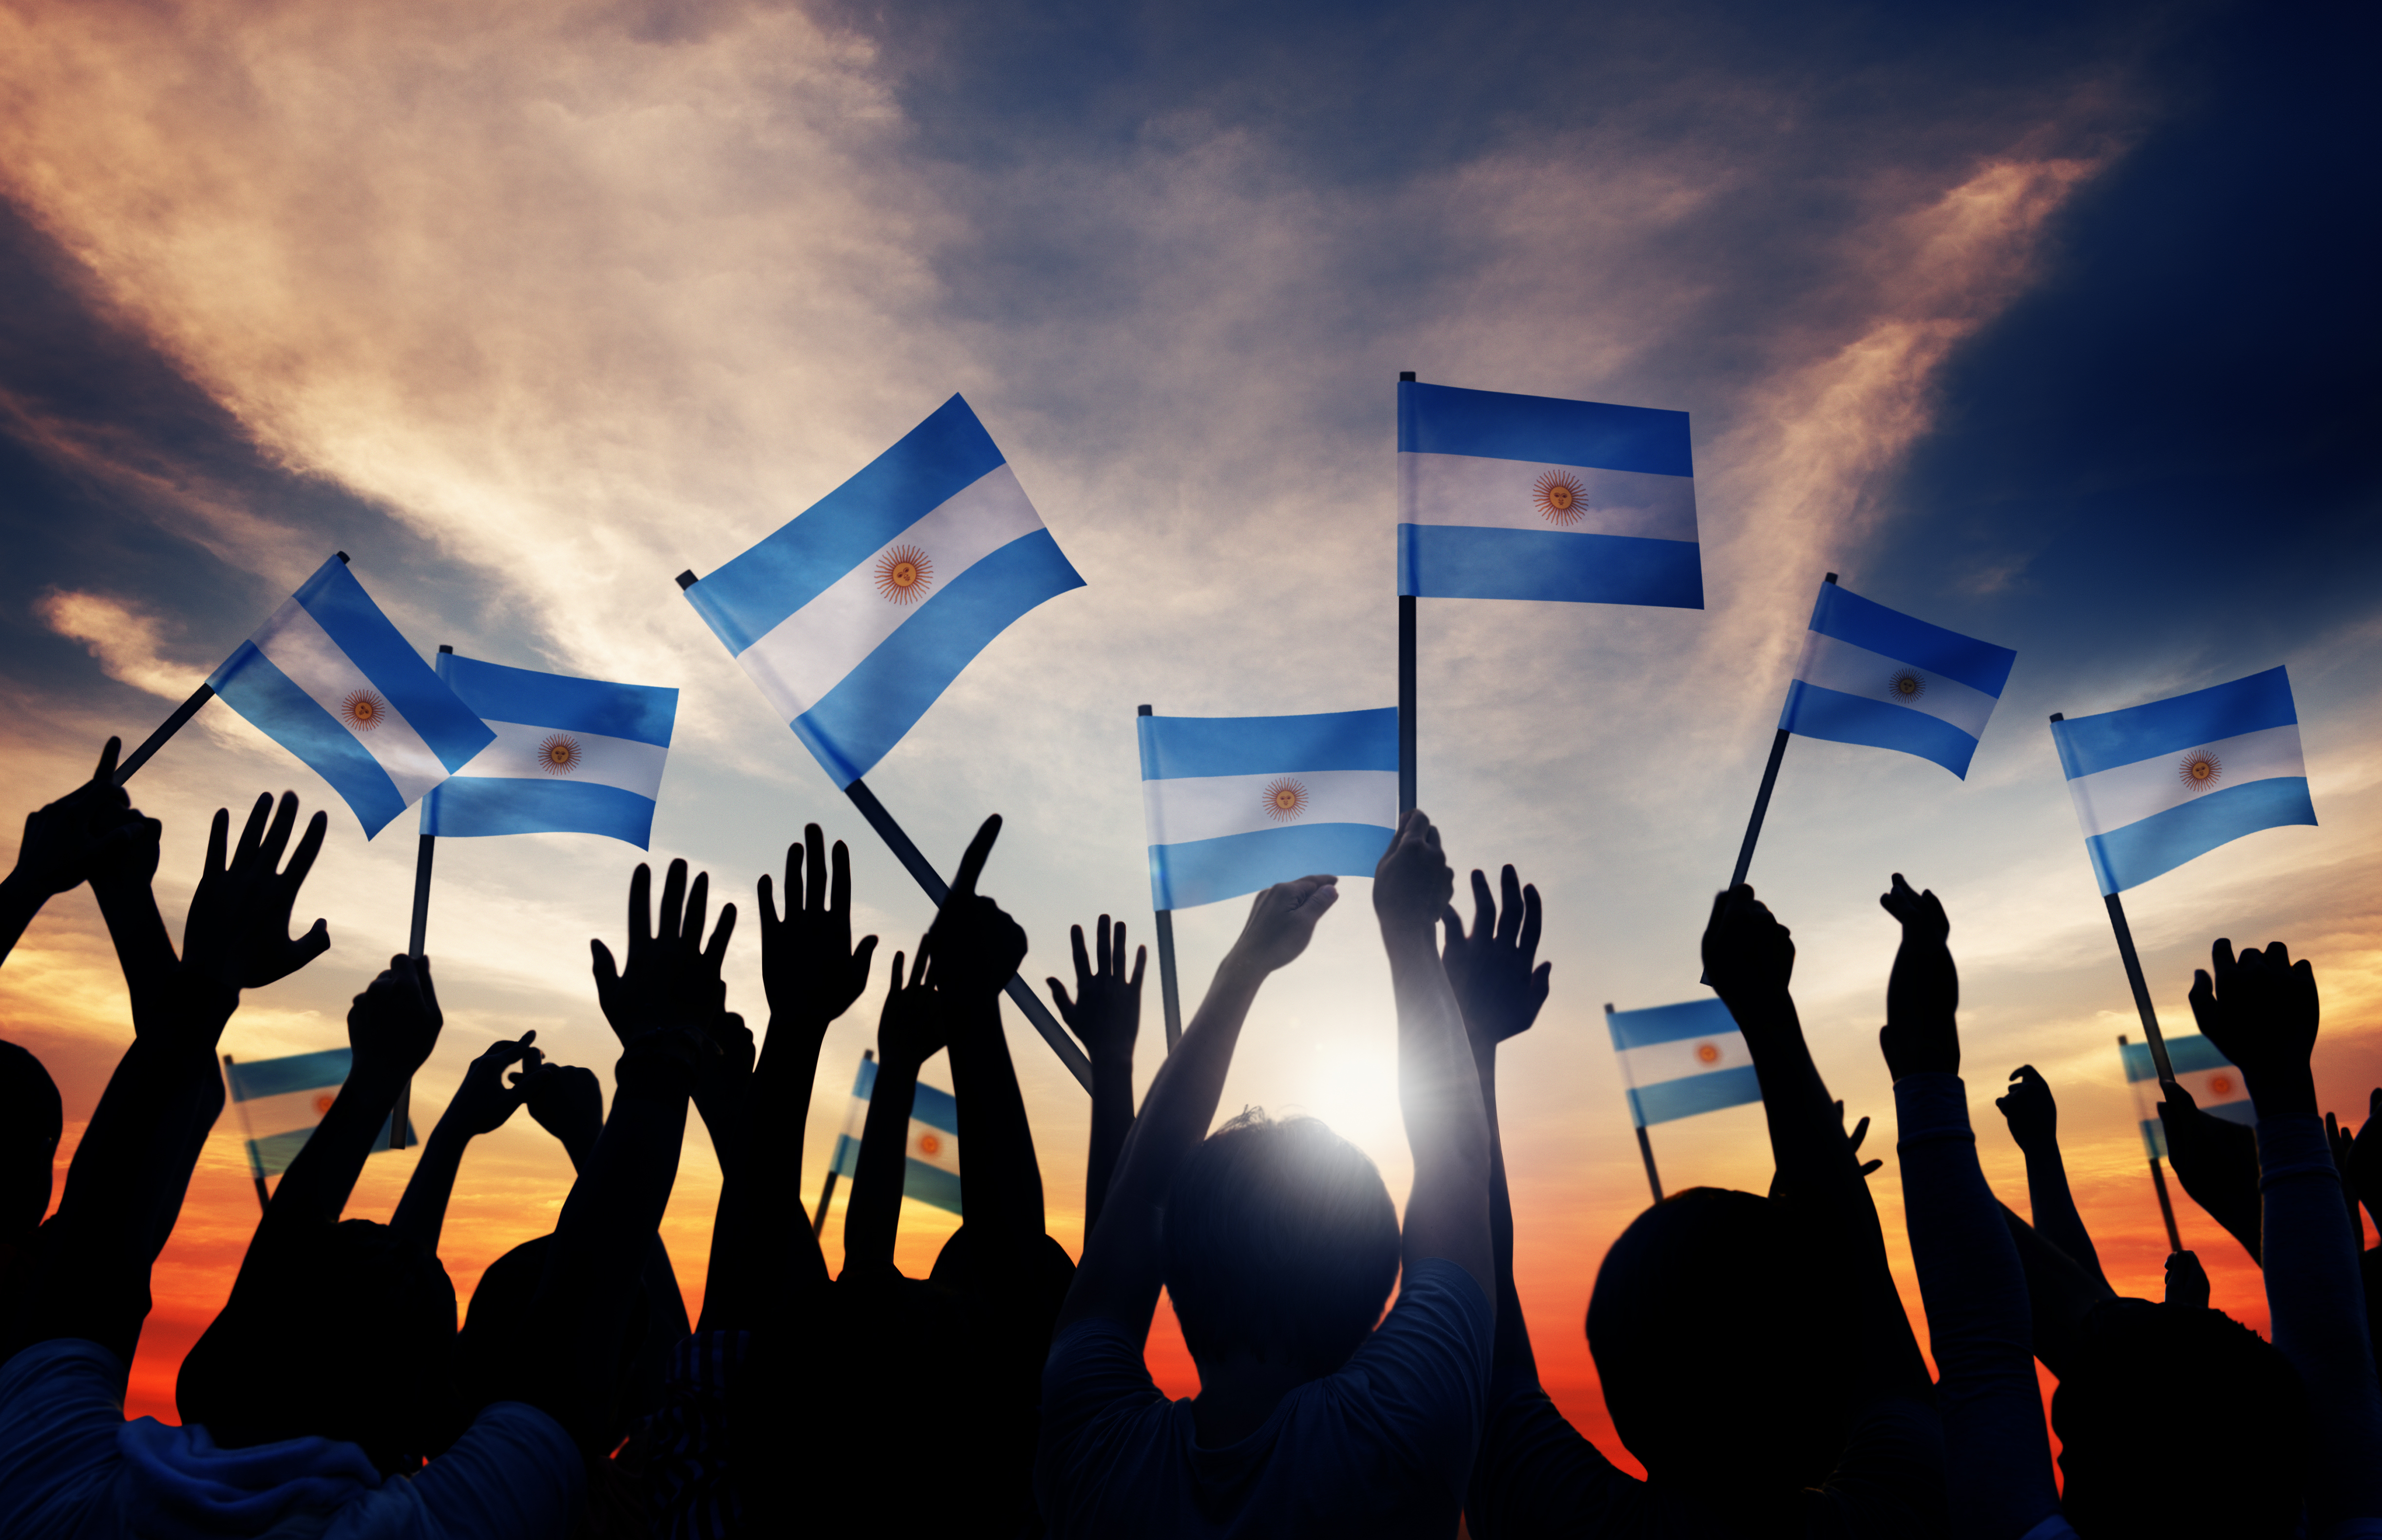 Argentina's Return to Populism: 5 Geopolitical Effects You Need to Know